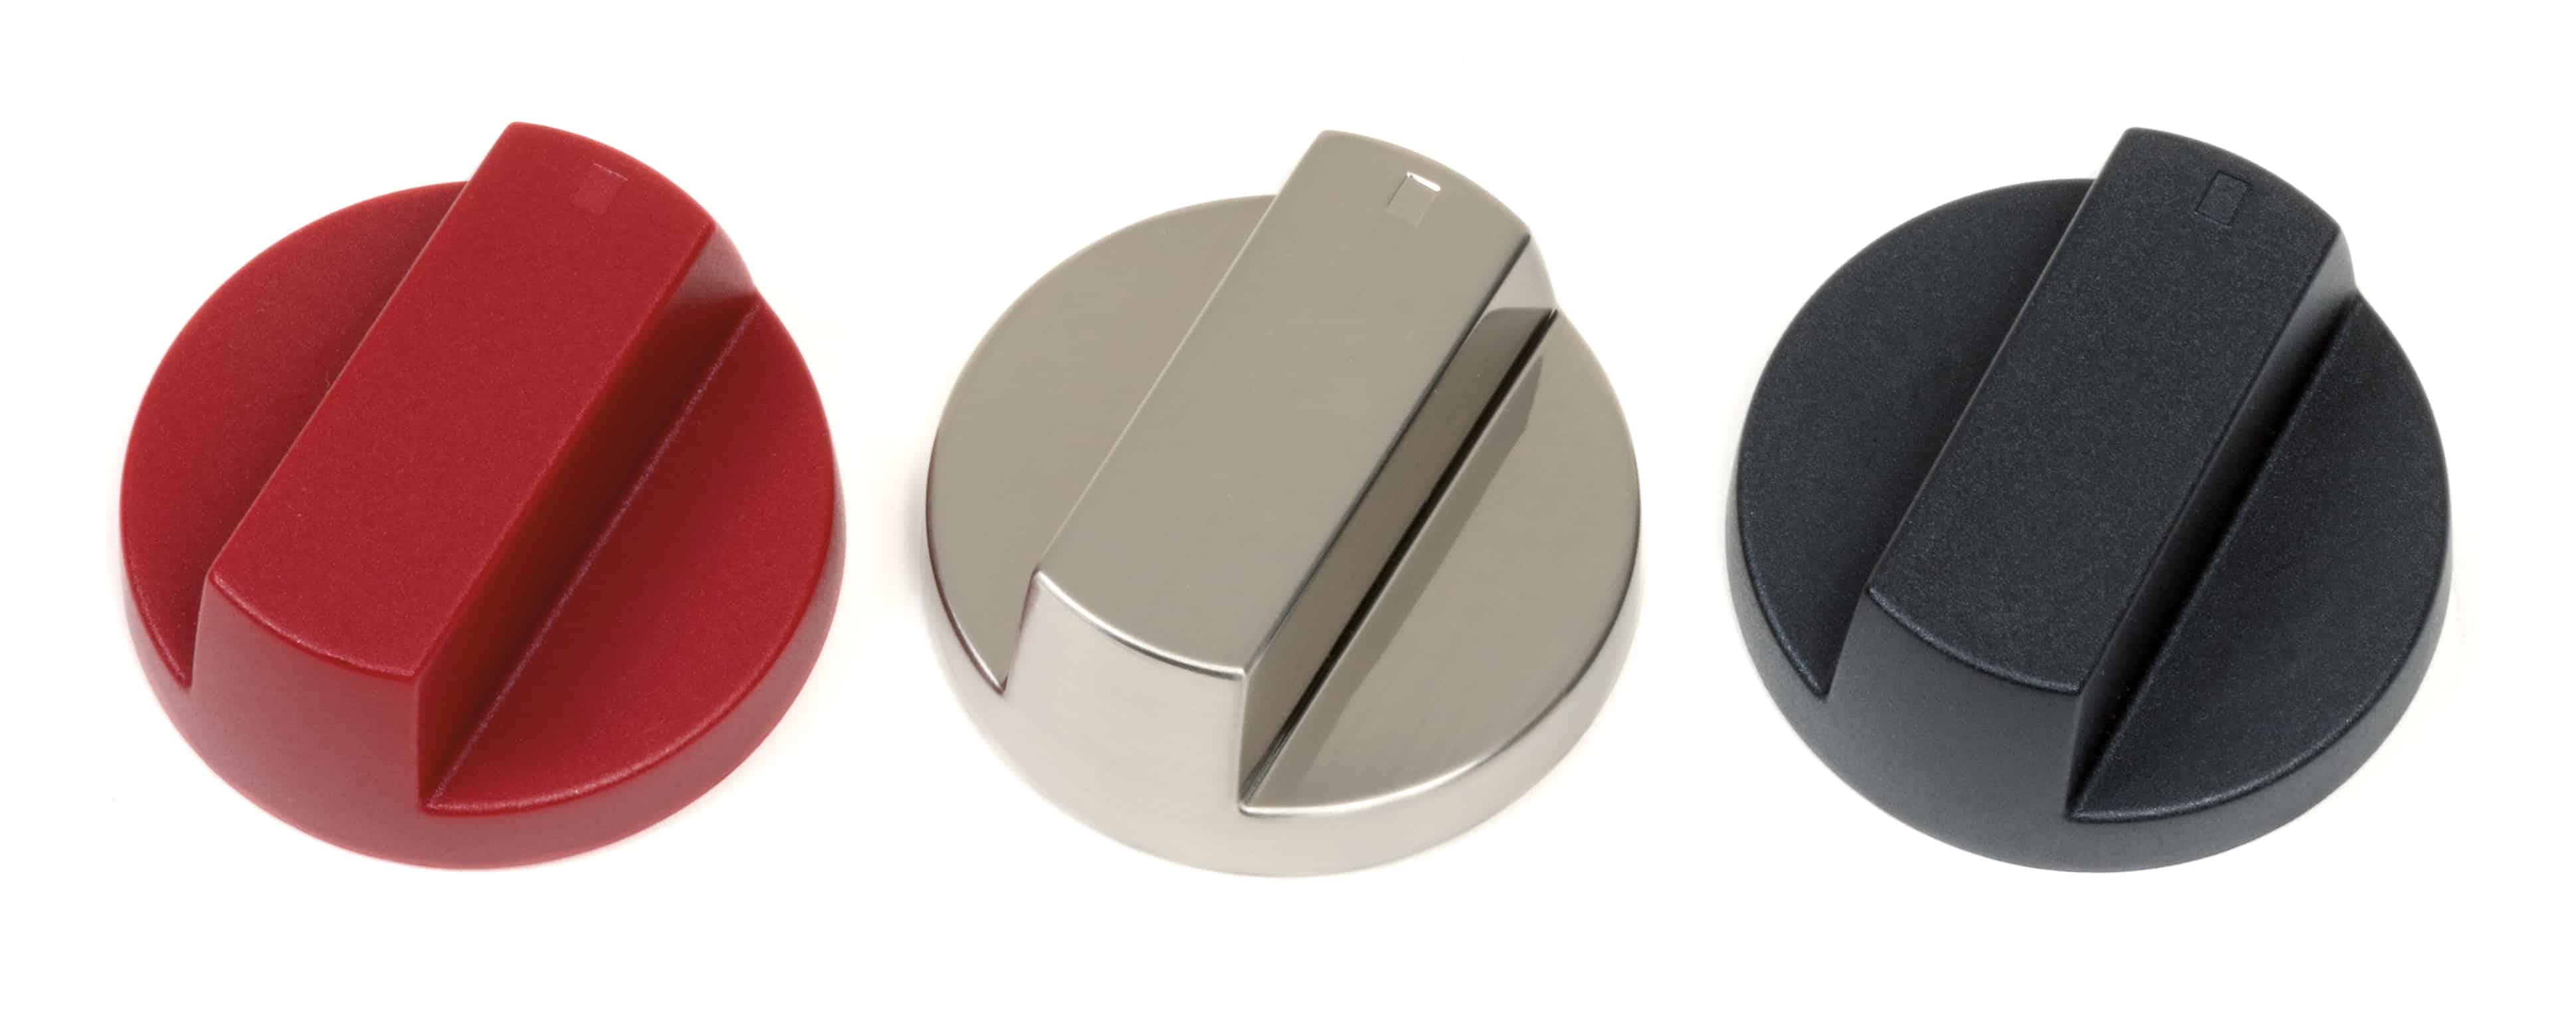 image of the three available oven knob colors for Wolf Gourmet Countertop oven